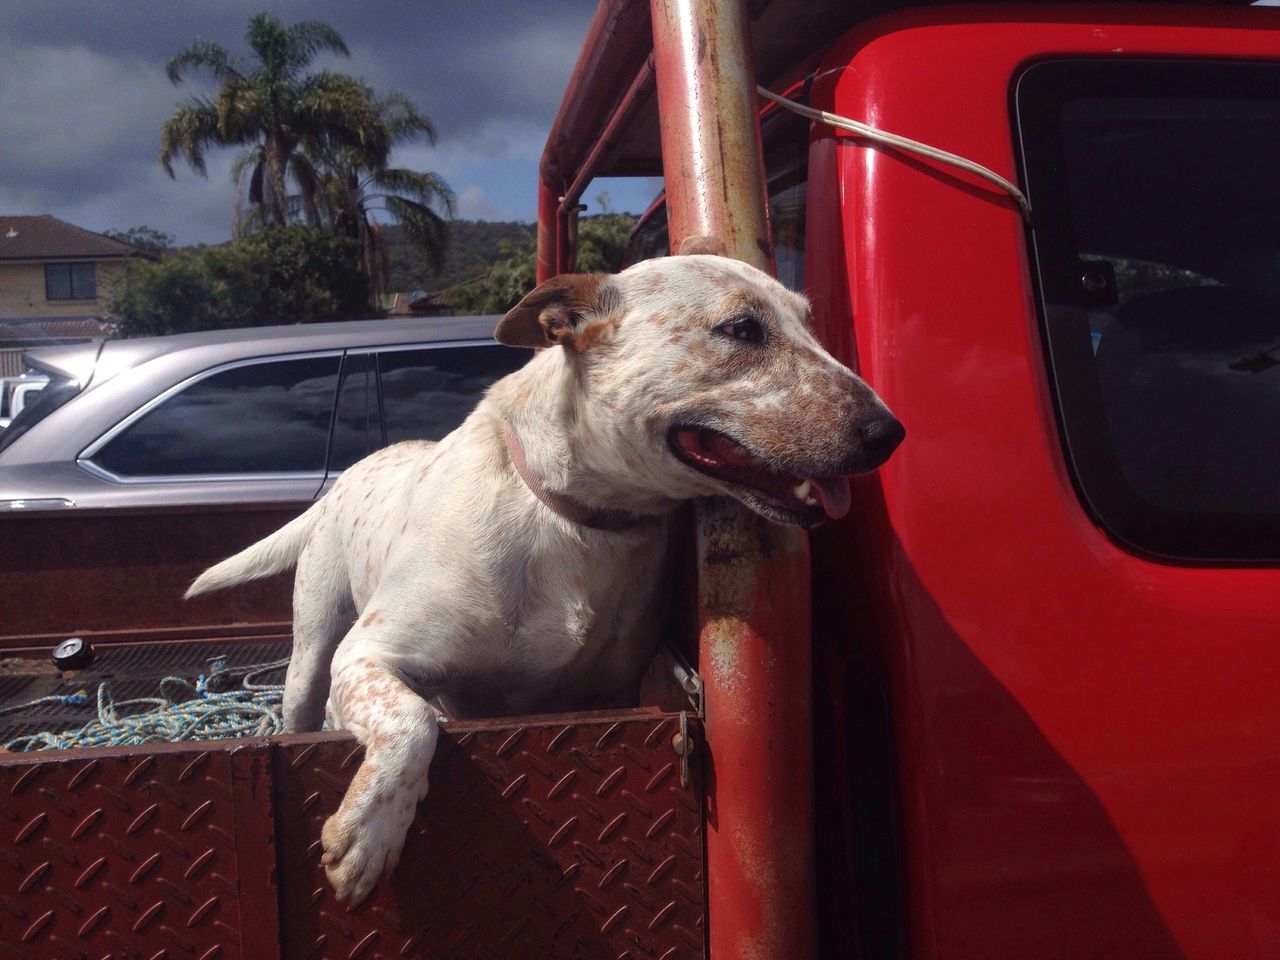 Dog Animal Animal Themes UTE Pets One Animal Domestic Animals No People Red Aussie Mode Of Transport Outdoors Car Lifestyle Cute Pets Tounge Out  Tounge Panting Mammal Pitbull Staffy Adapted To The City